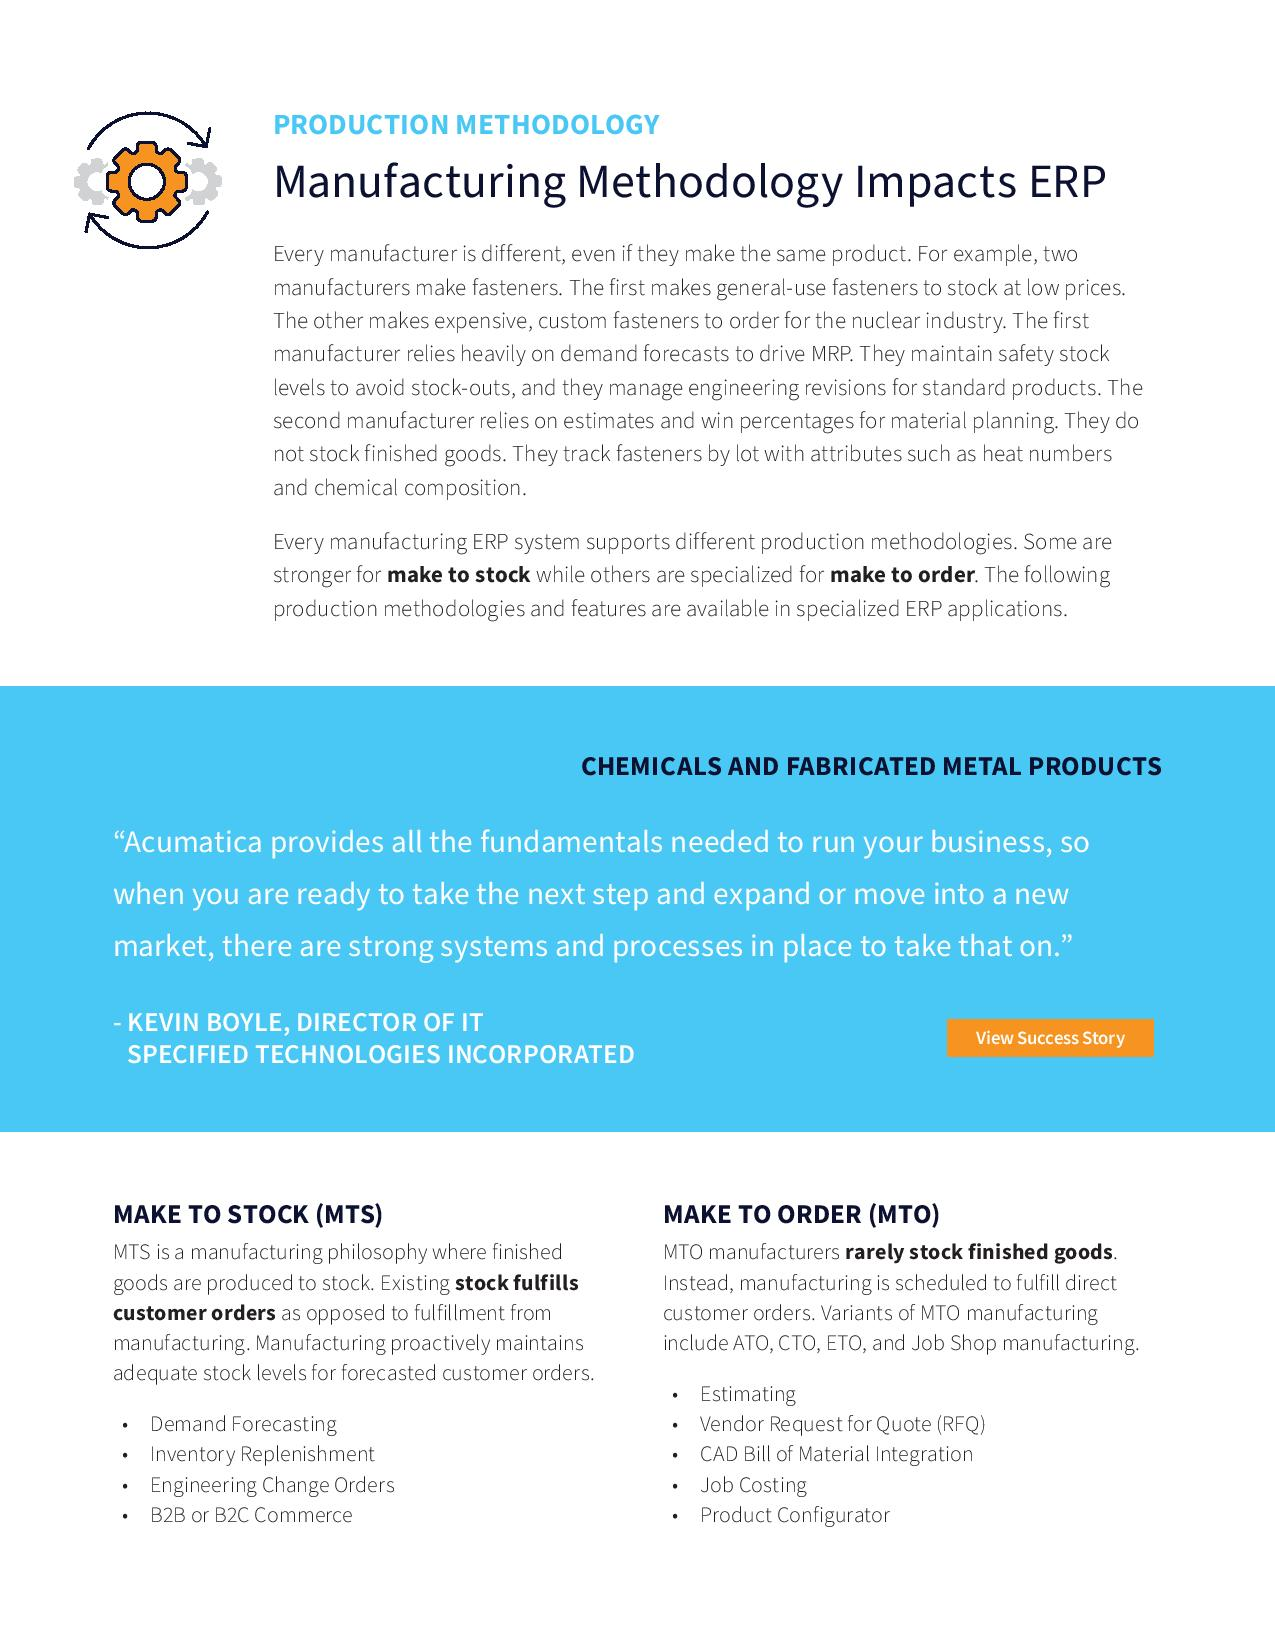 The Manufacturing ERP Guide, page 2